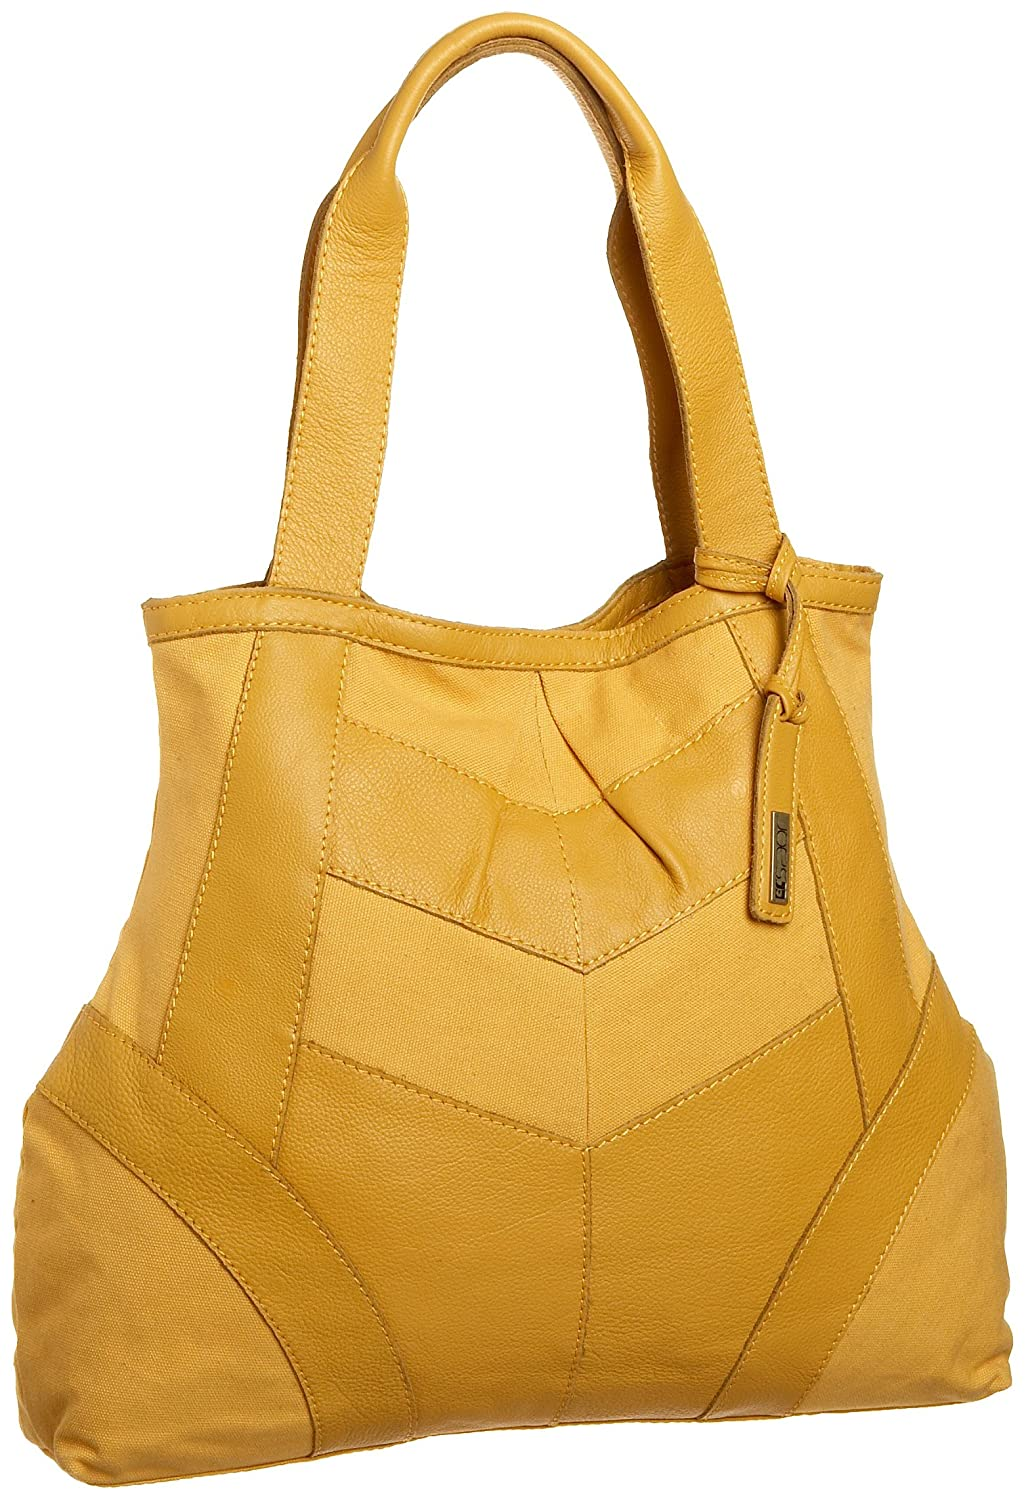 Joe's Jeans Katie Large Tote - Free Overnight Shipping & Return Shipping: Endless.com :  leather joes jeans yellow straps